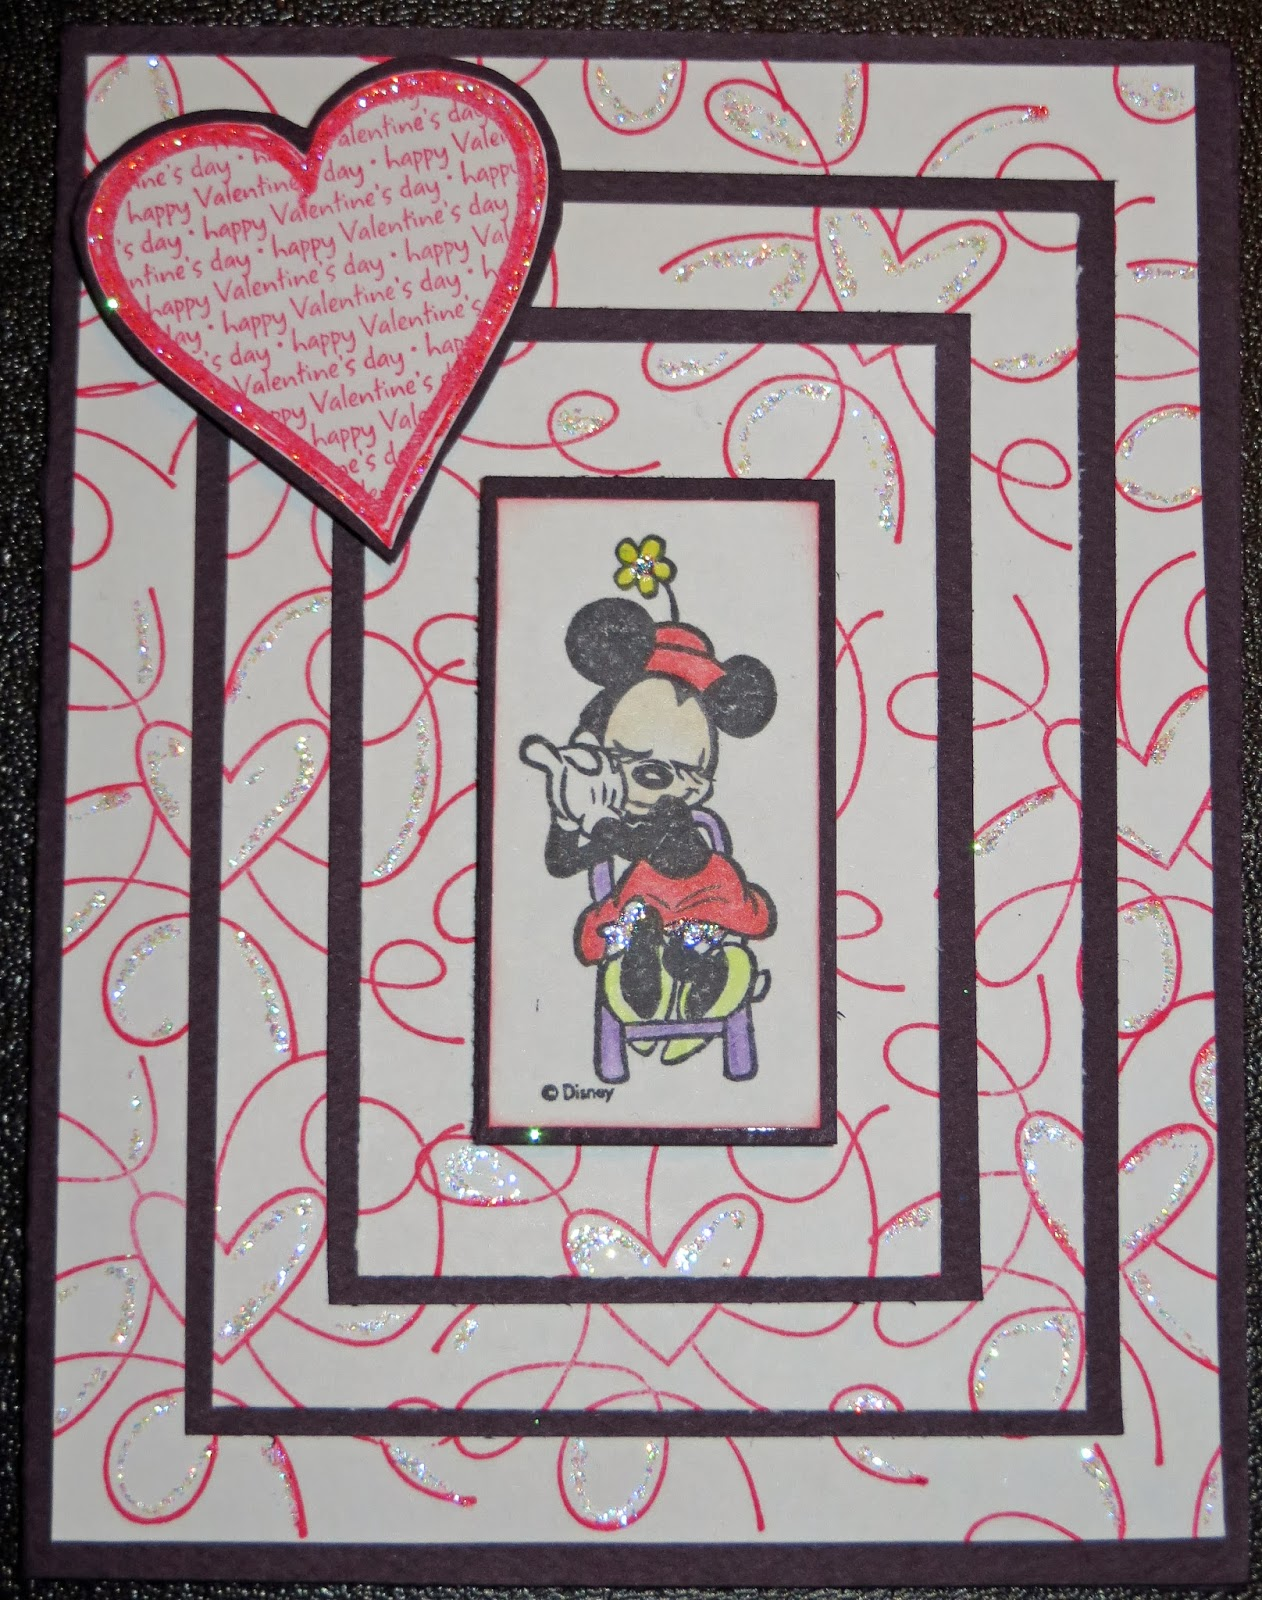 Rubber stamps for crafting - The Recipe For This Card Is Paper From My Stash Minnie Mouse Stamp From Rubber Stampede Background Heart Stamp By Studio G Katie Co Designer